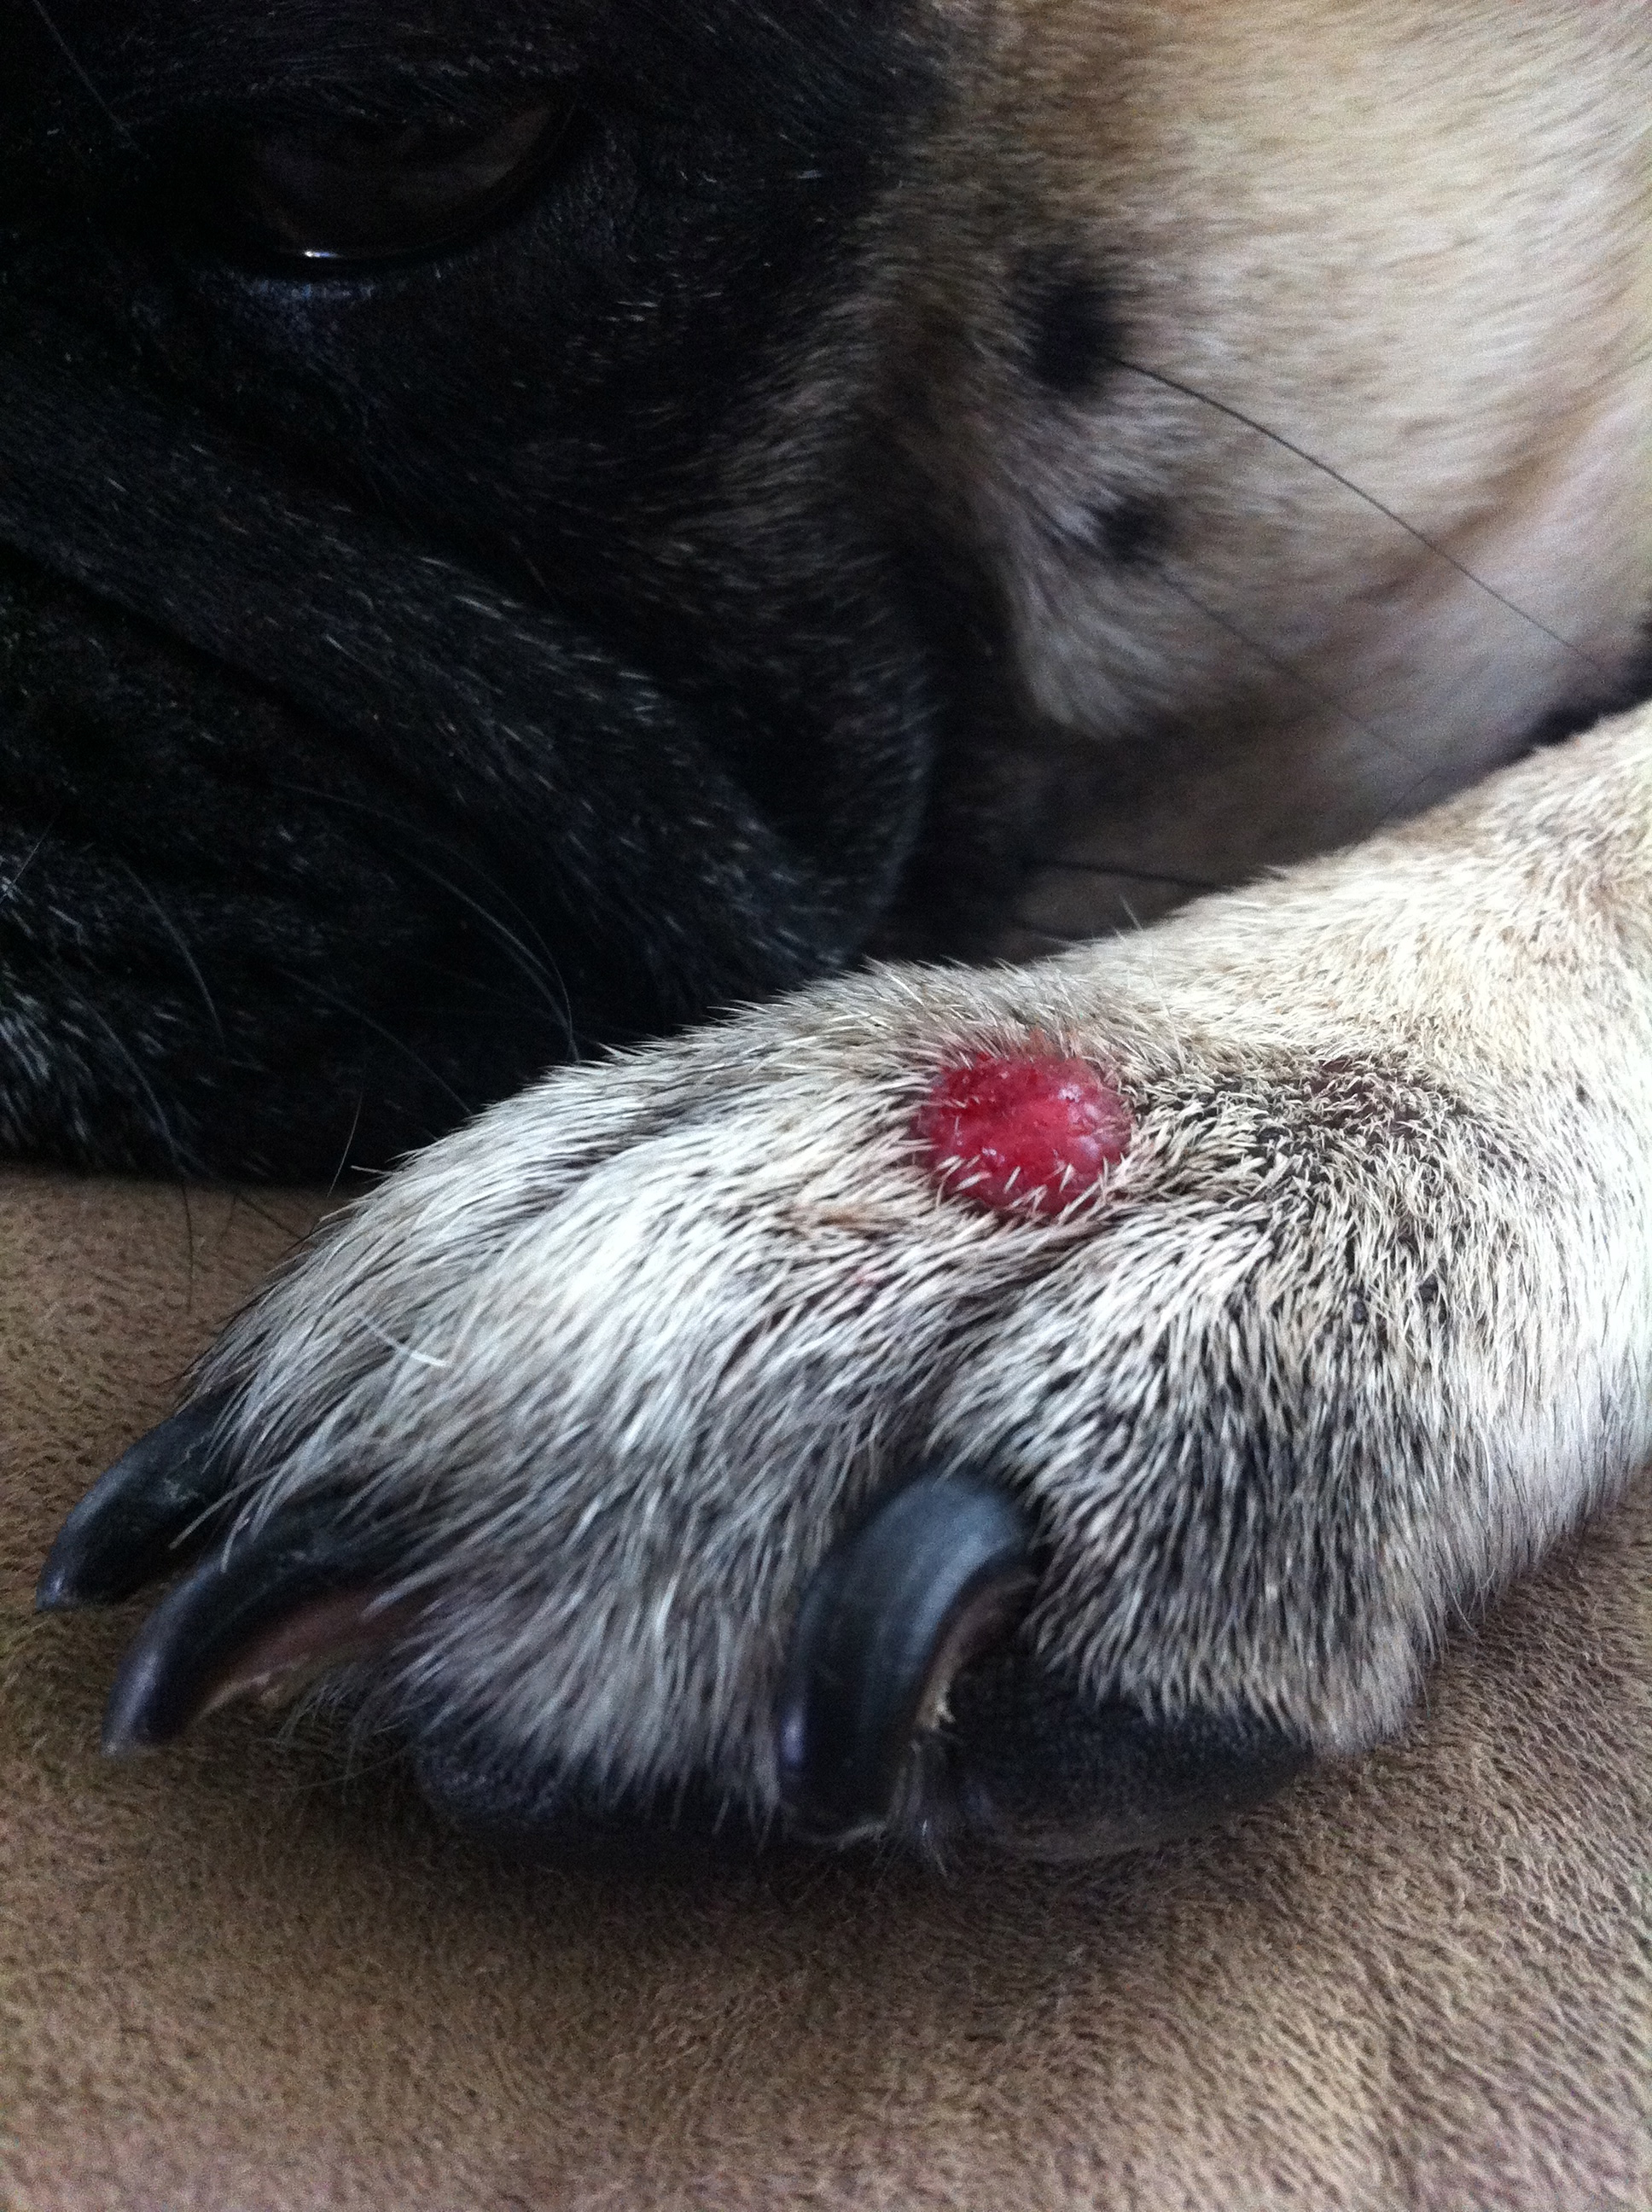 Wart Looking Large Growth On Dogs Hind Leg